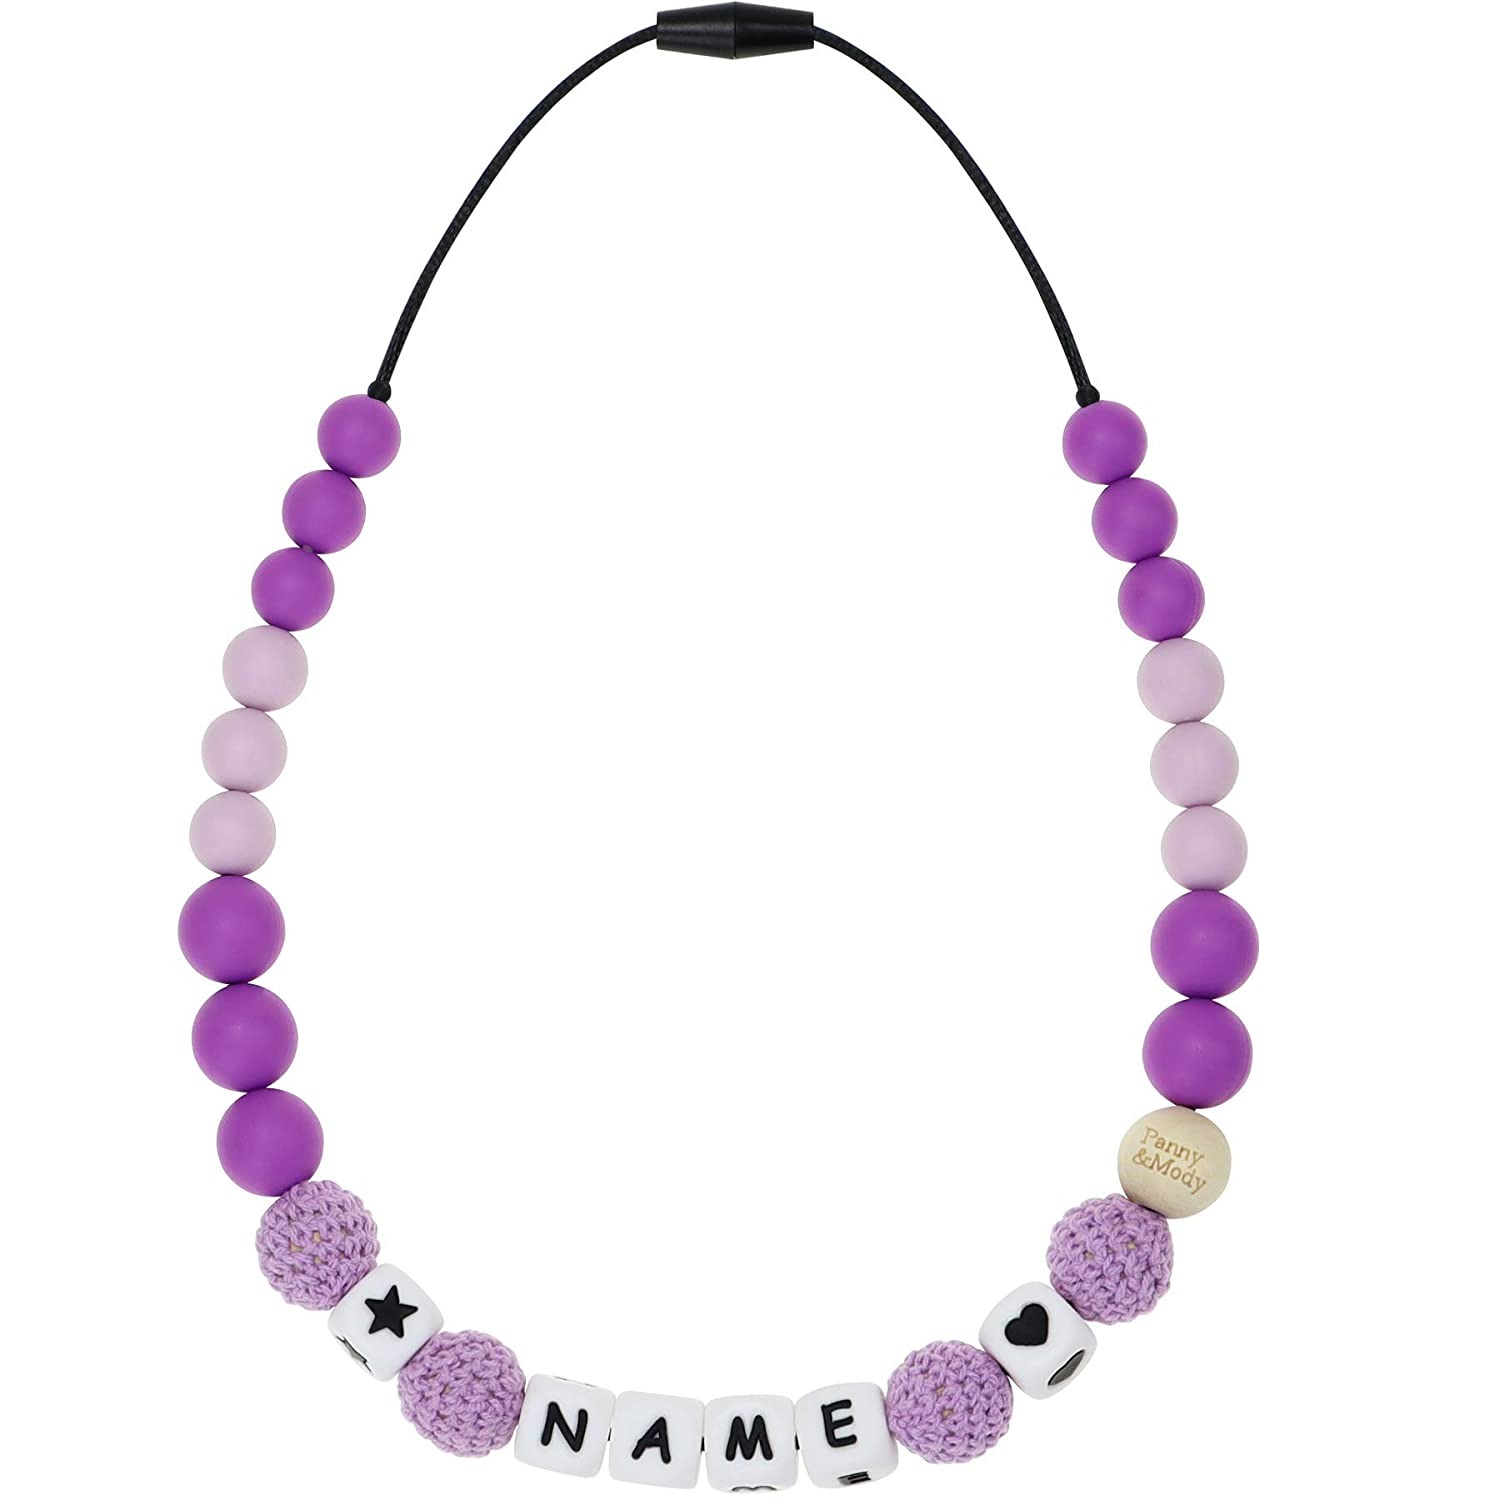 Personalized Name Baby Teething Necklace, Panny & Mody Customized teether Necklace with Silicone and Wooden Crochet Beads for Babies' Teething Gum Pain Relie(Purple)